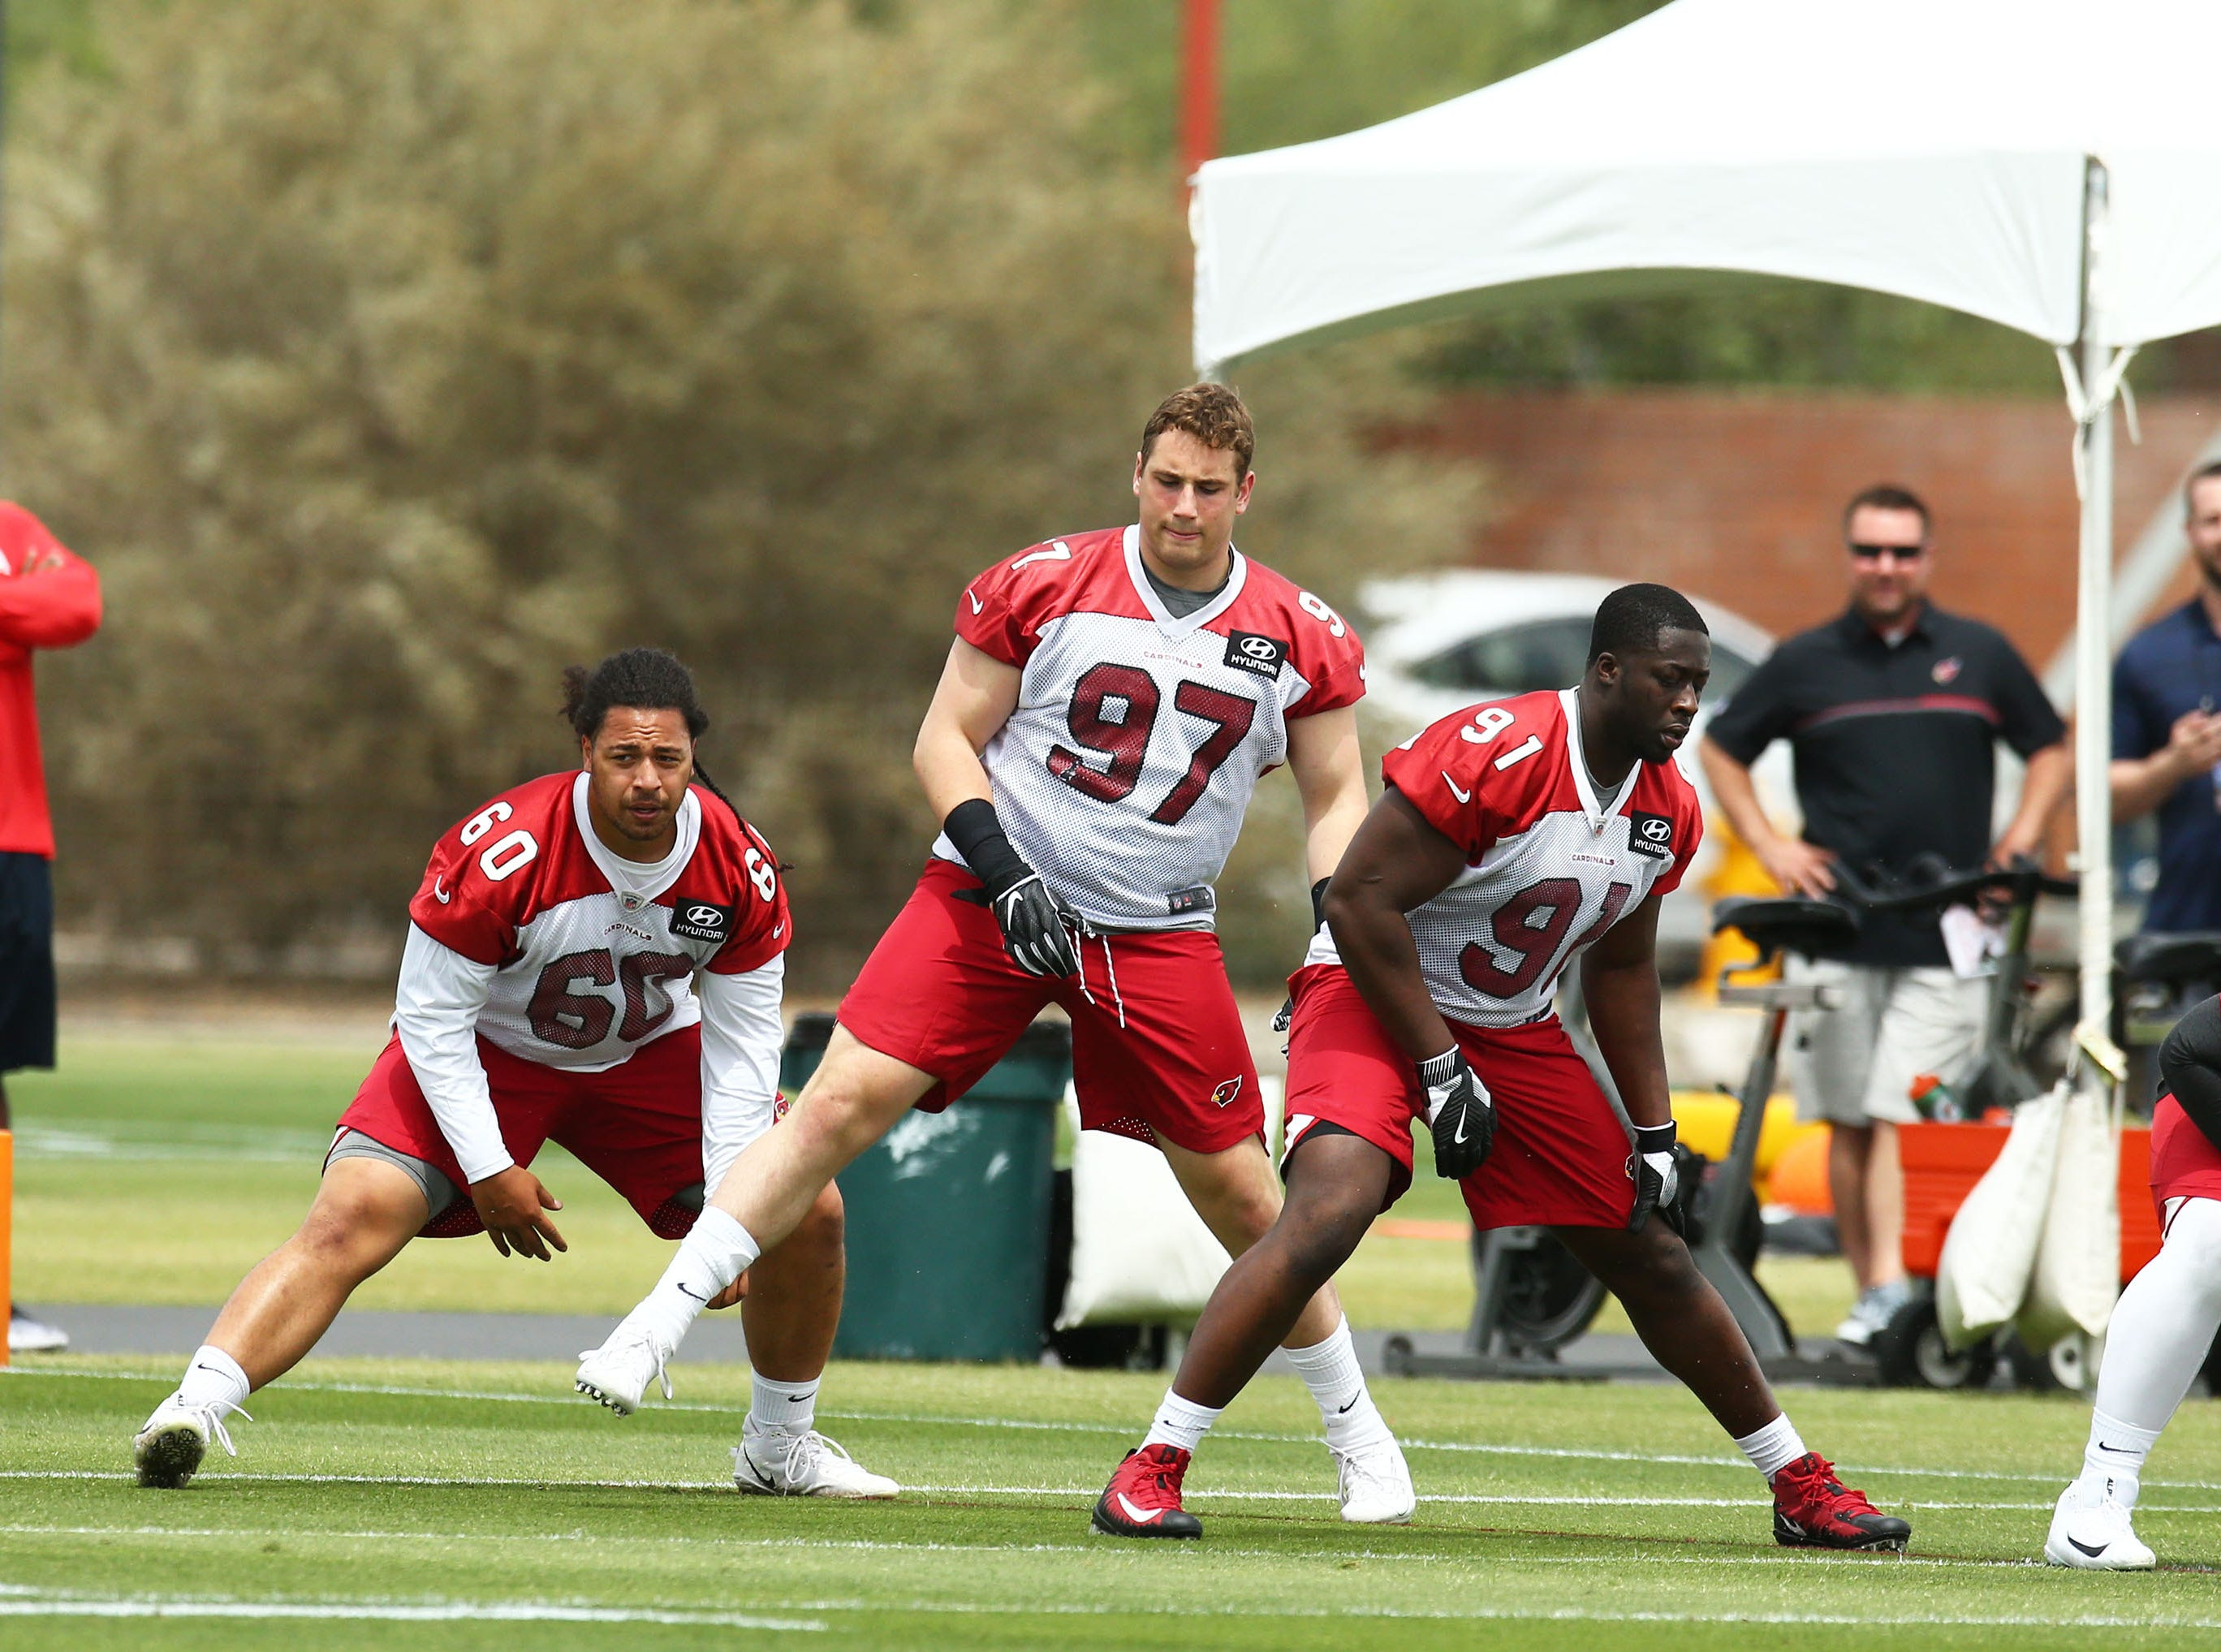 Arizona Cardinals defensive lineman Peli Anau (60), defensive lineman Zach Allen (97) and defensive lineman Michael Dogbe (91) during rookie mini-camp on May 10, 2019 in Tempe, Ariz.